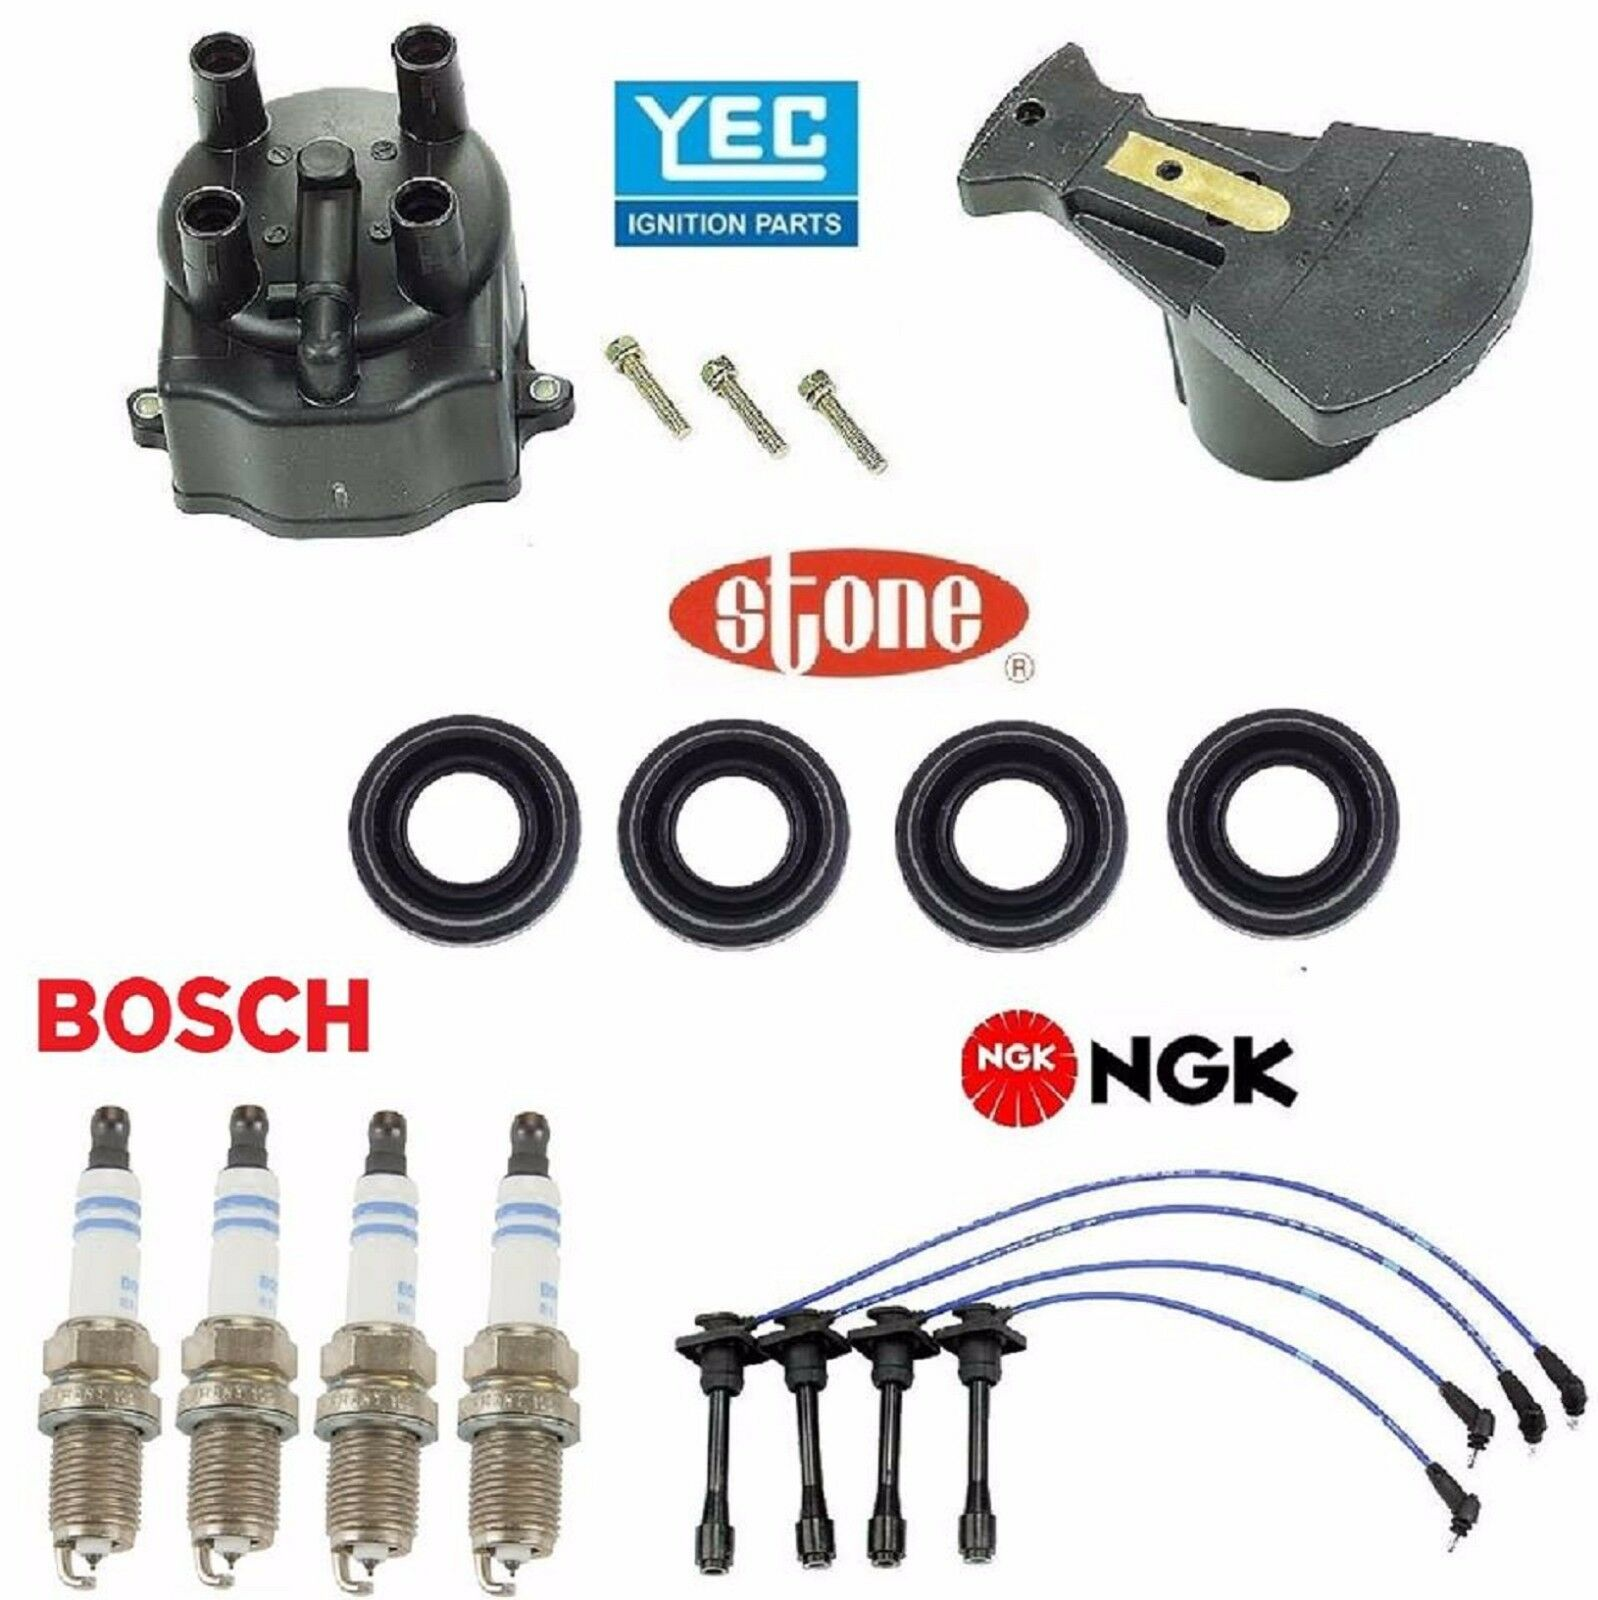 Tune up Kit Cap Rotor Plugs Wire for Toyota Corolla 1996 | eBay